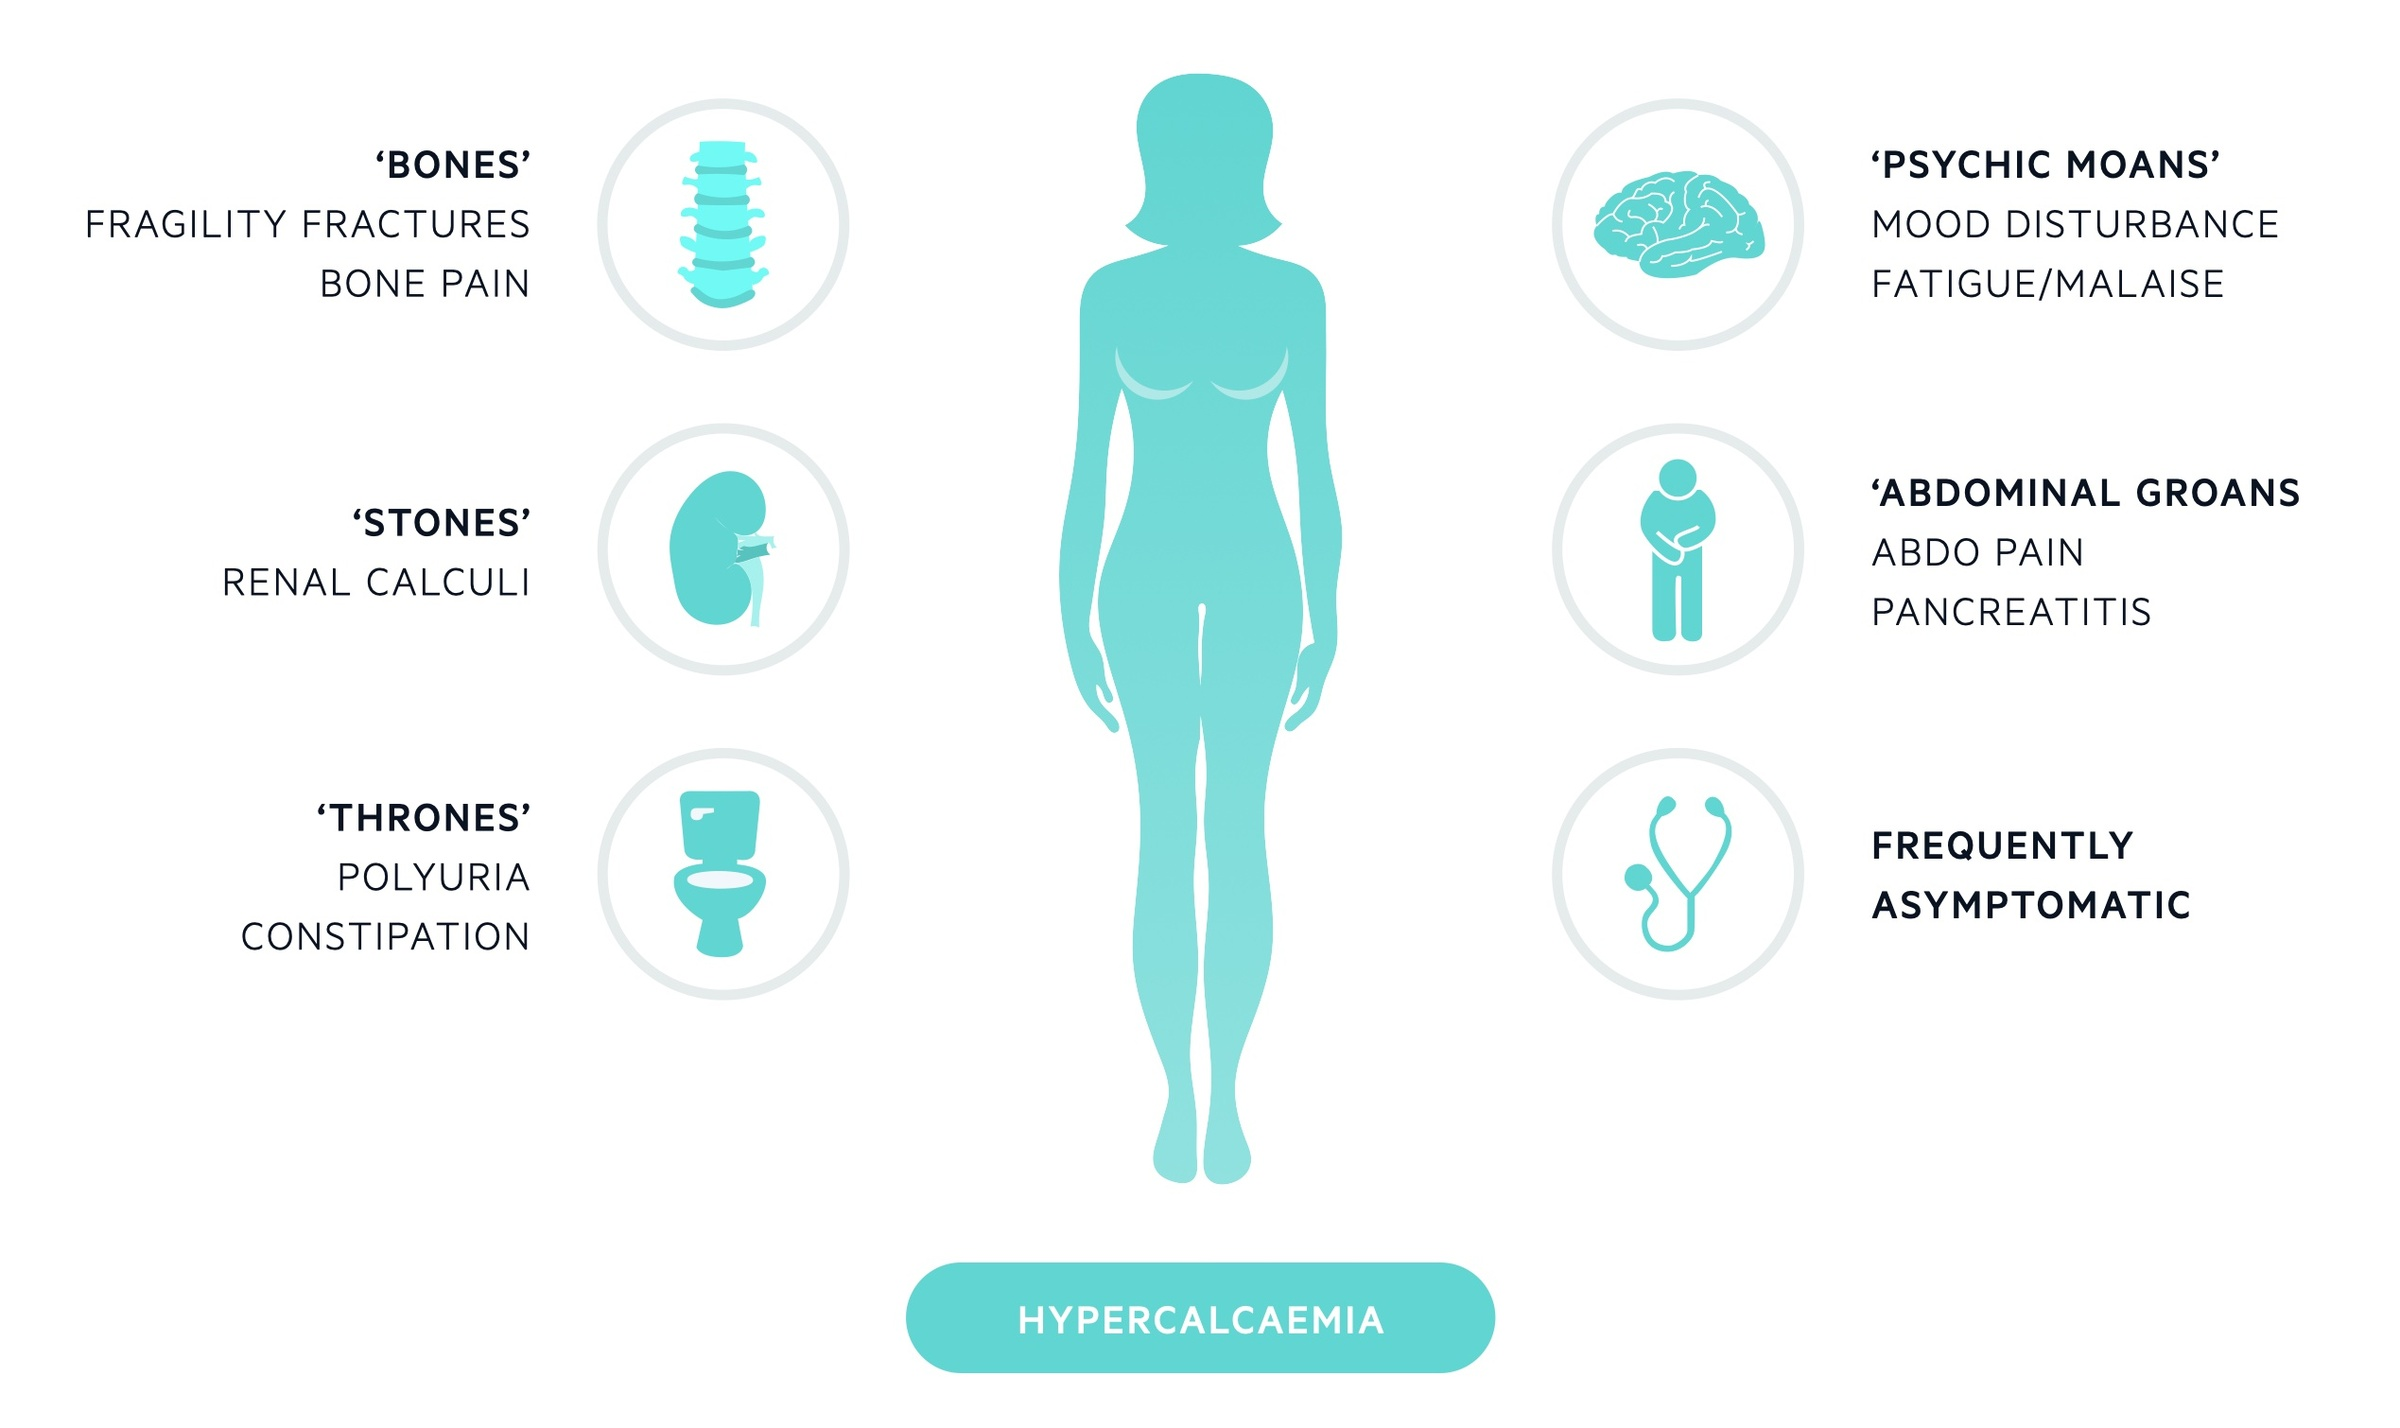 Features of hypercalcaemia